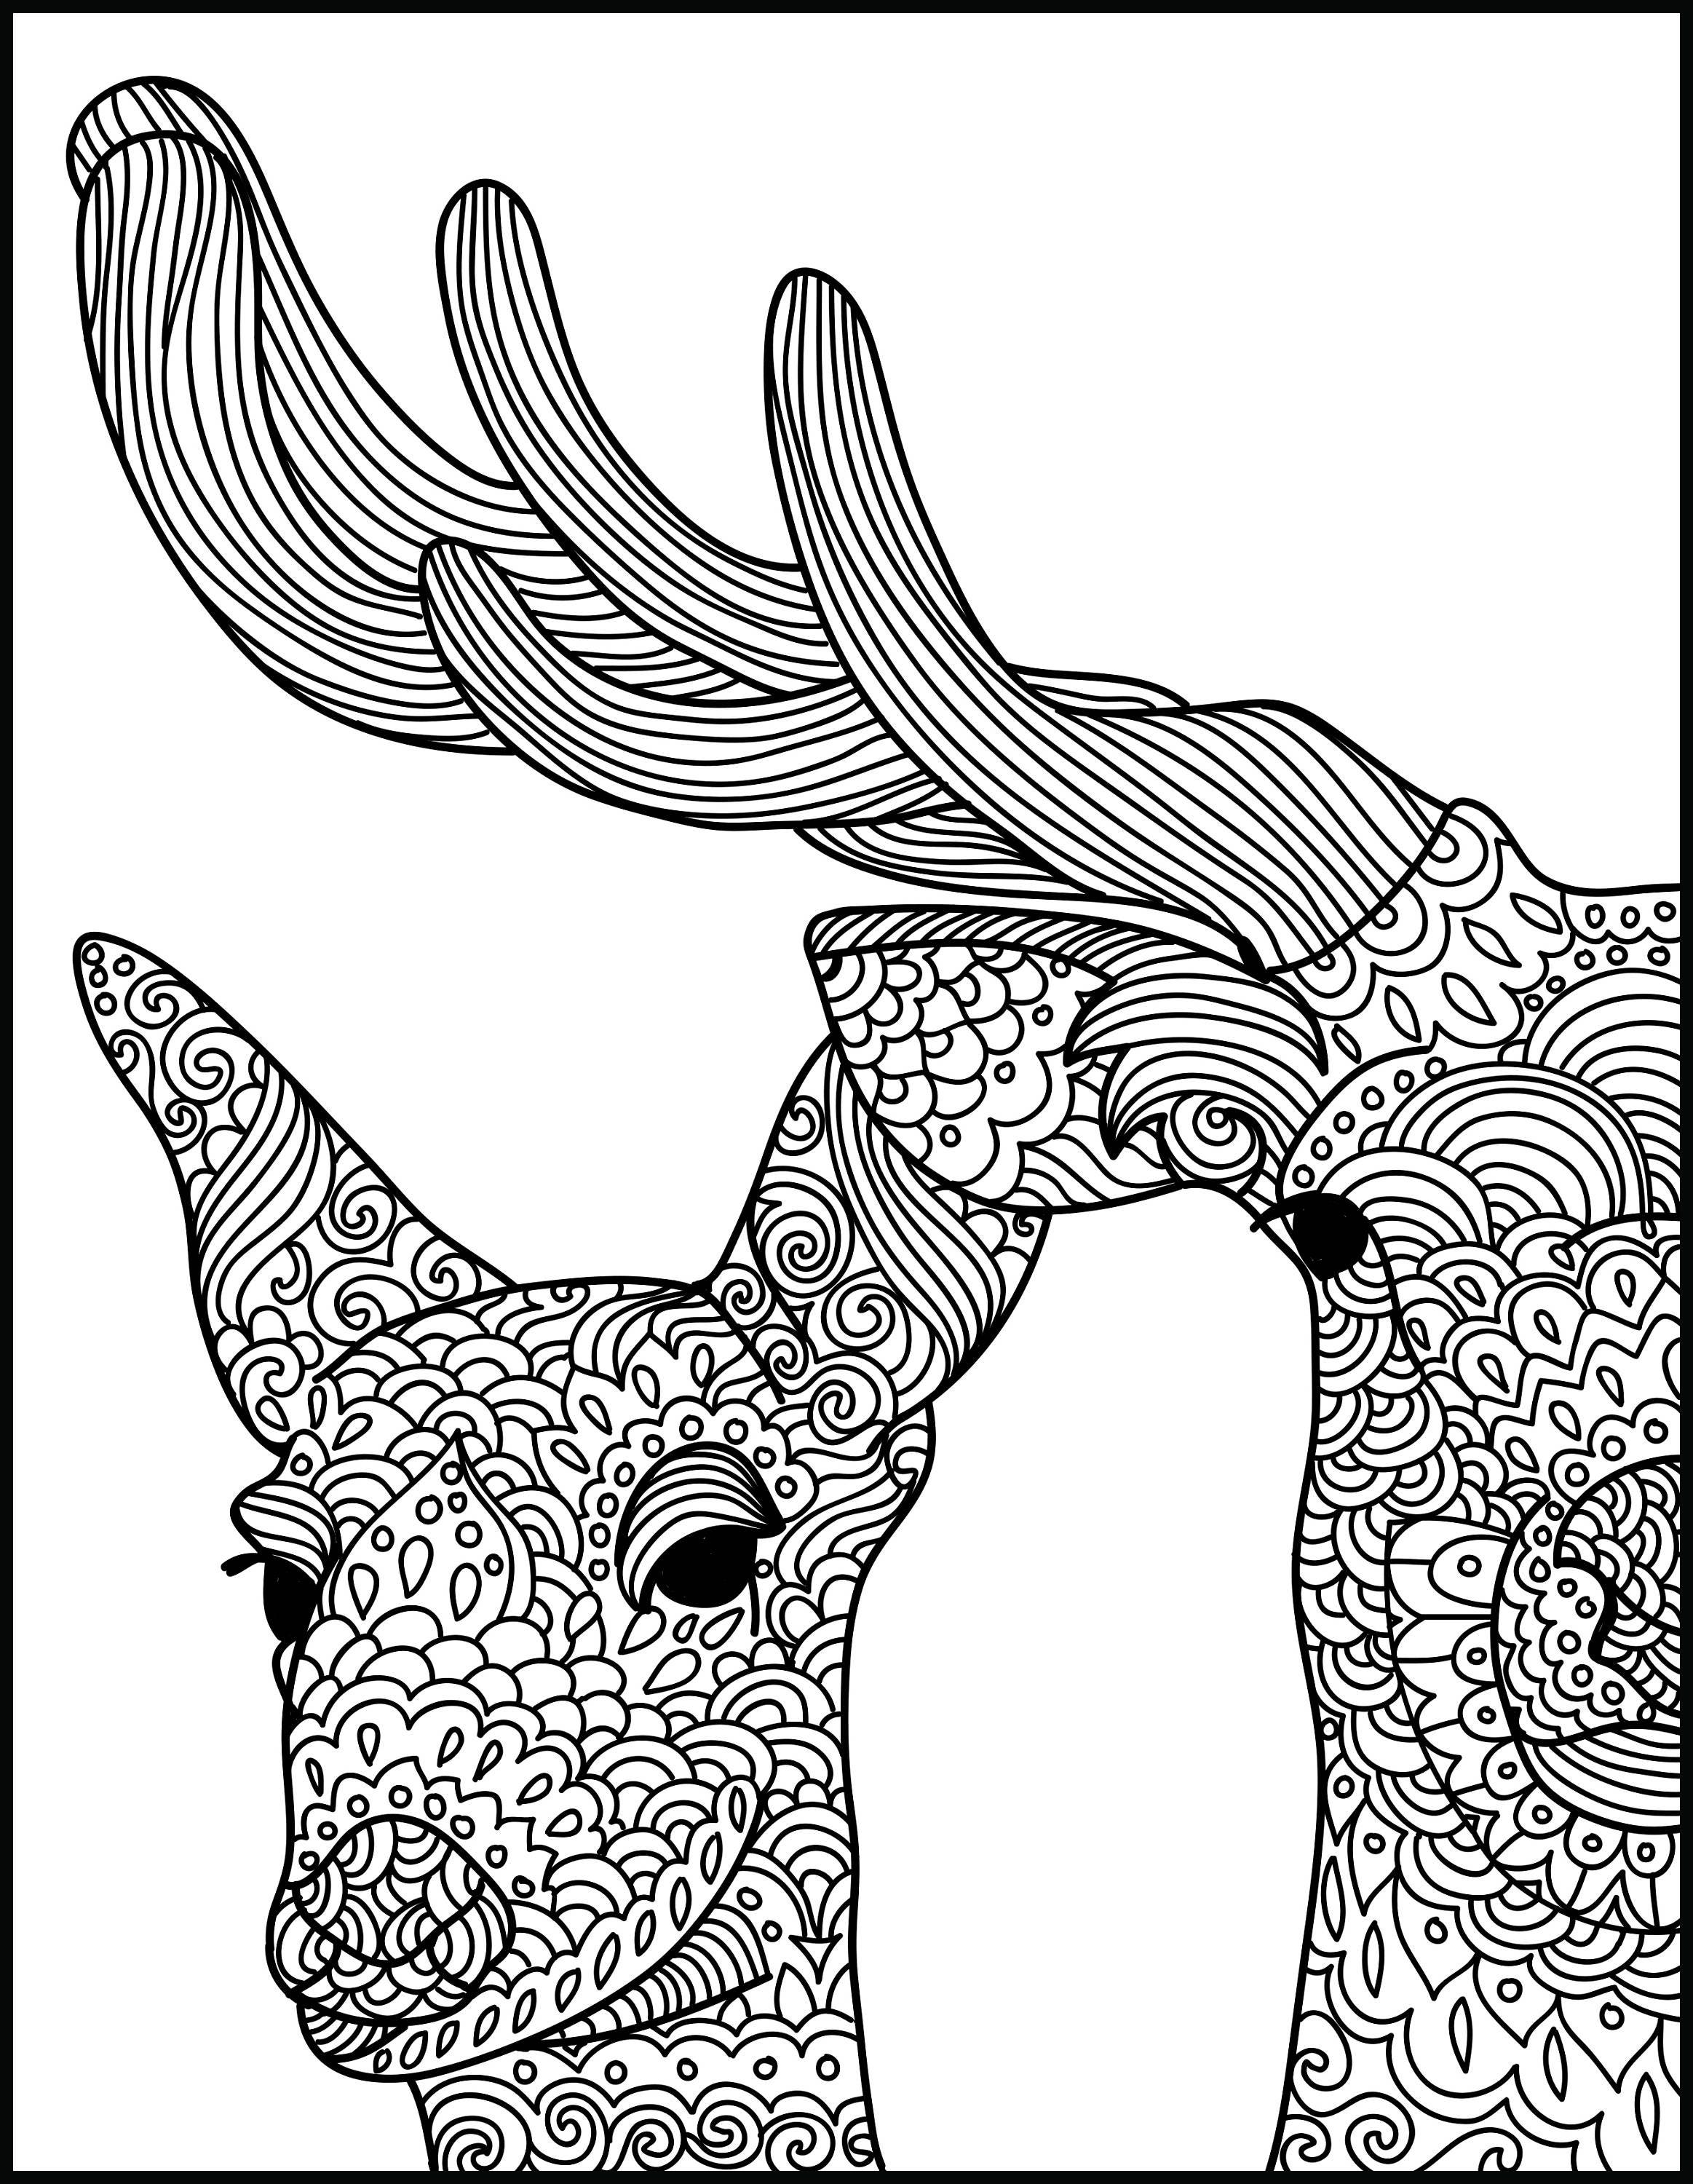 Animal Adult Coloring Page Deer Printable Coloring Page | Etsy